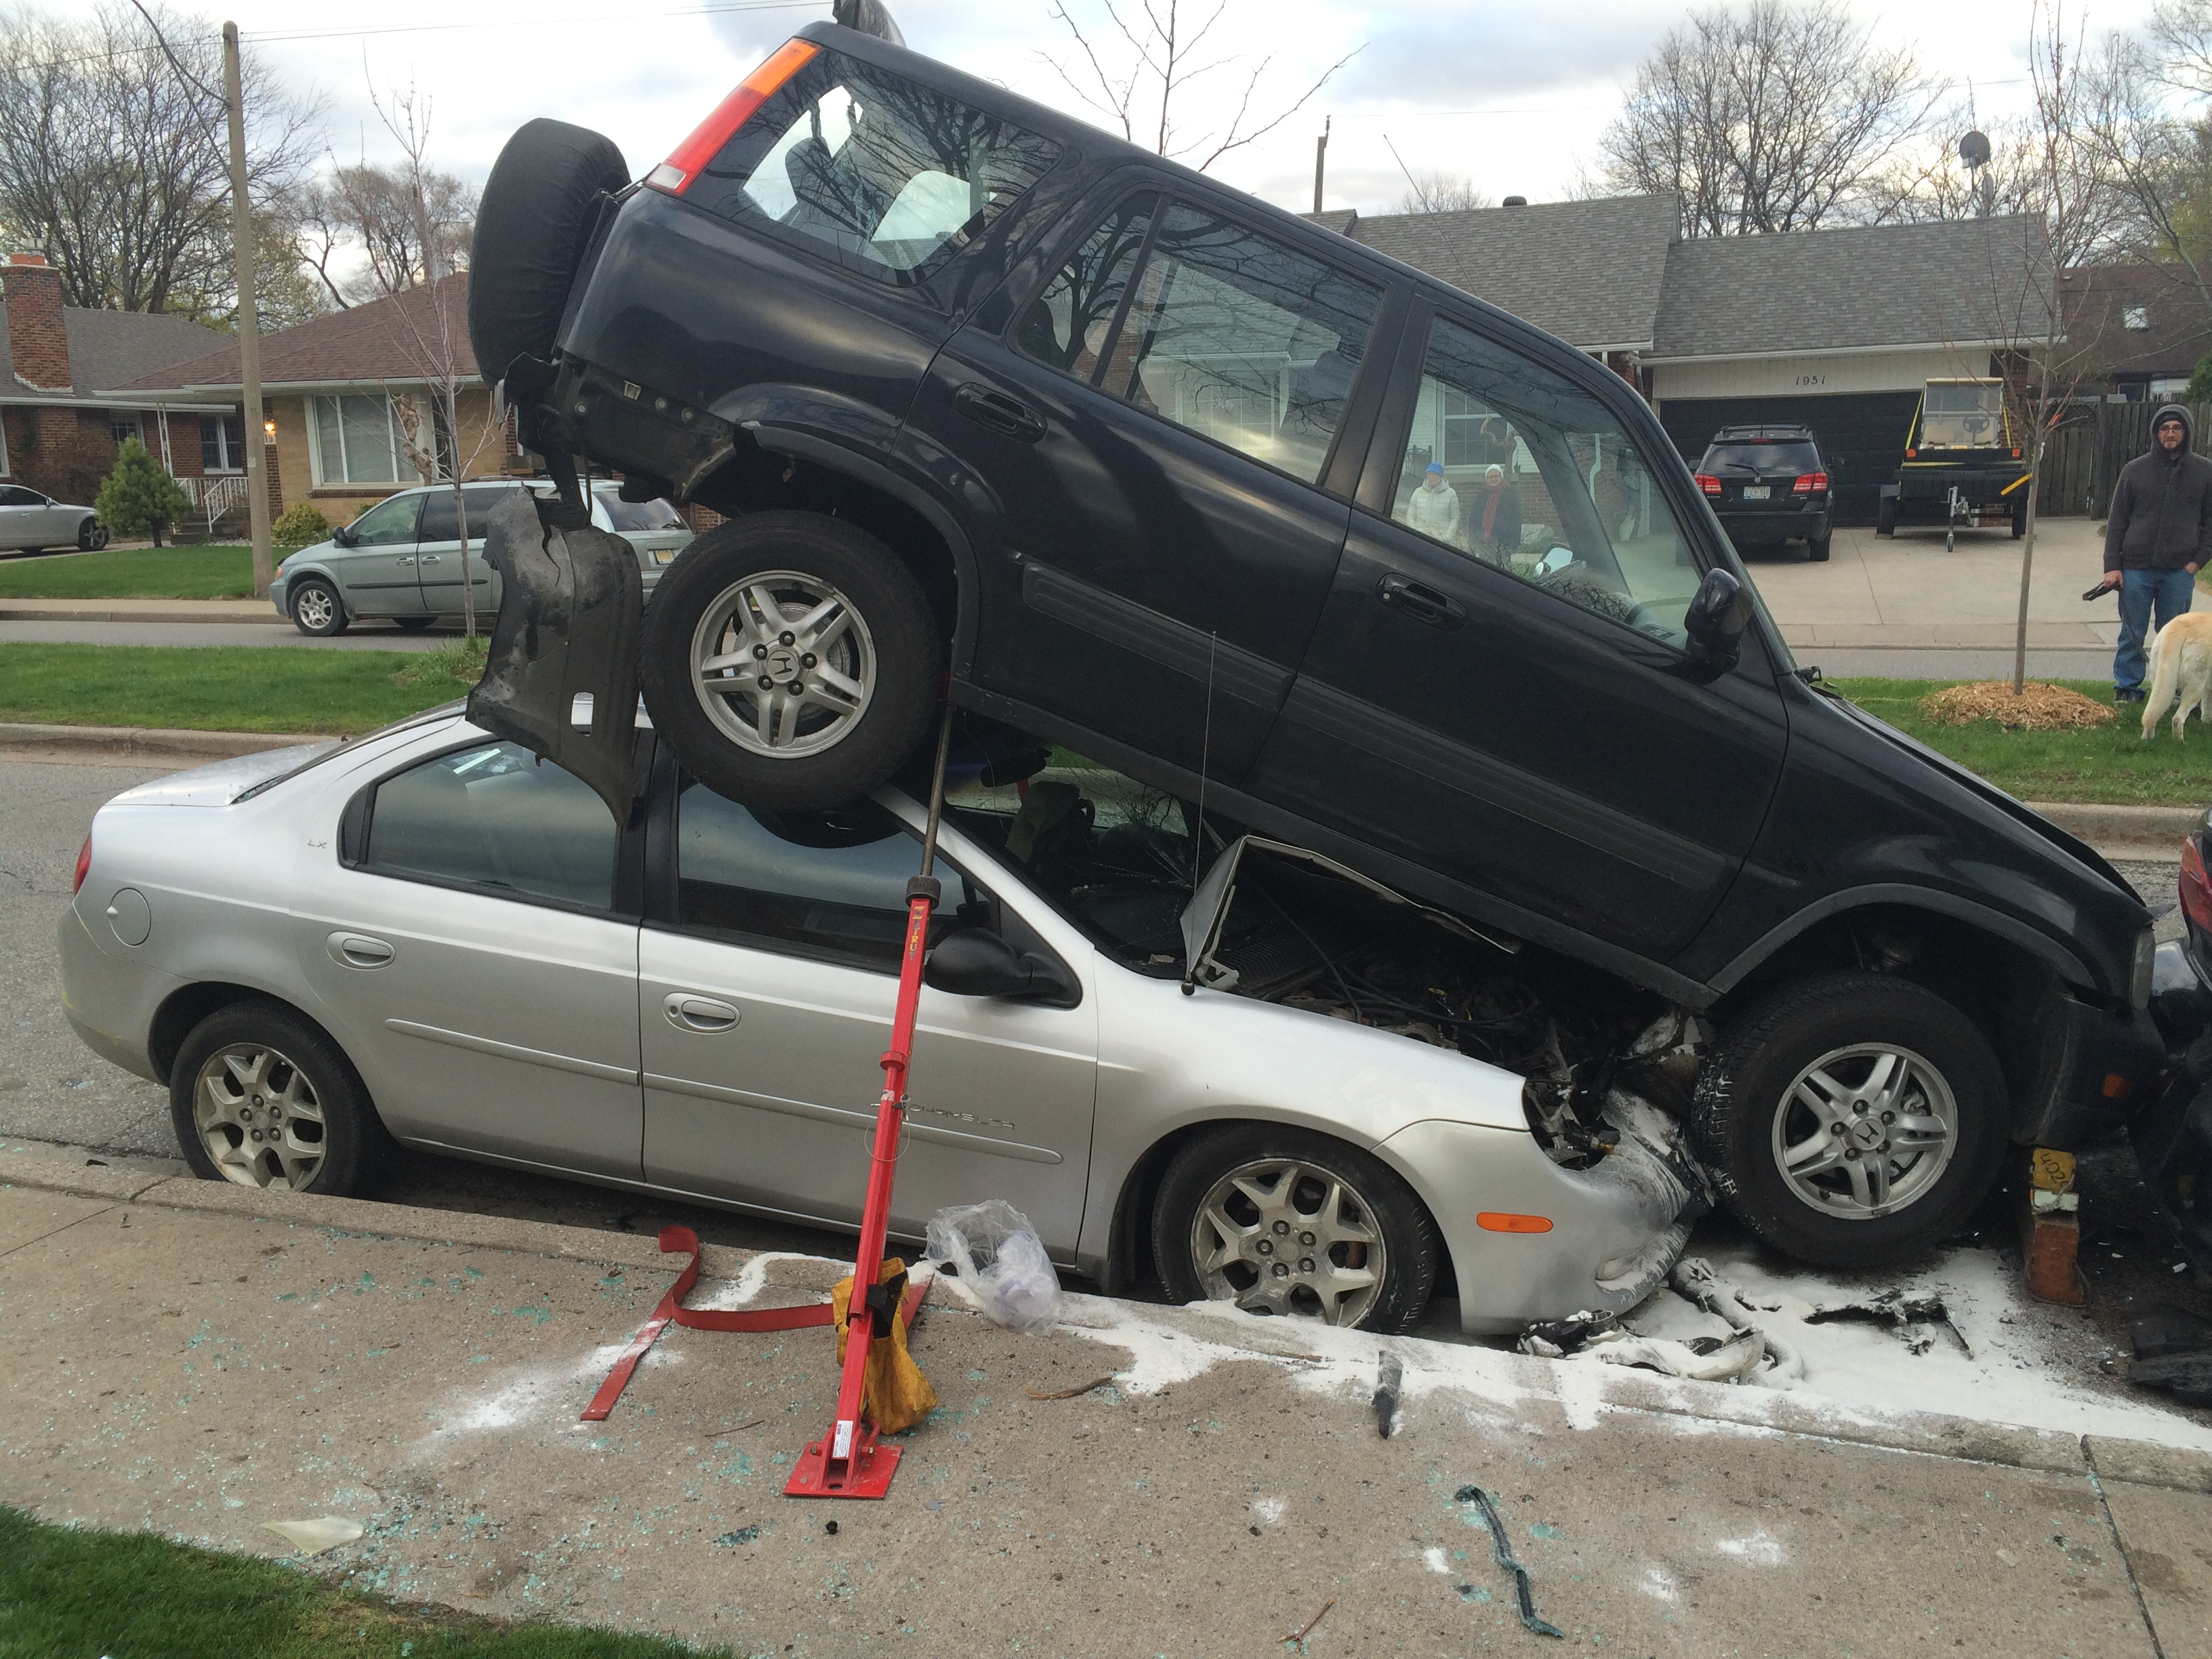 Windsor police investigate a crash in the 1900 block of Ypres Ave., April 23, 2015. (Photo by Jason Viau)